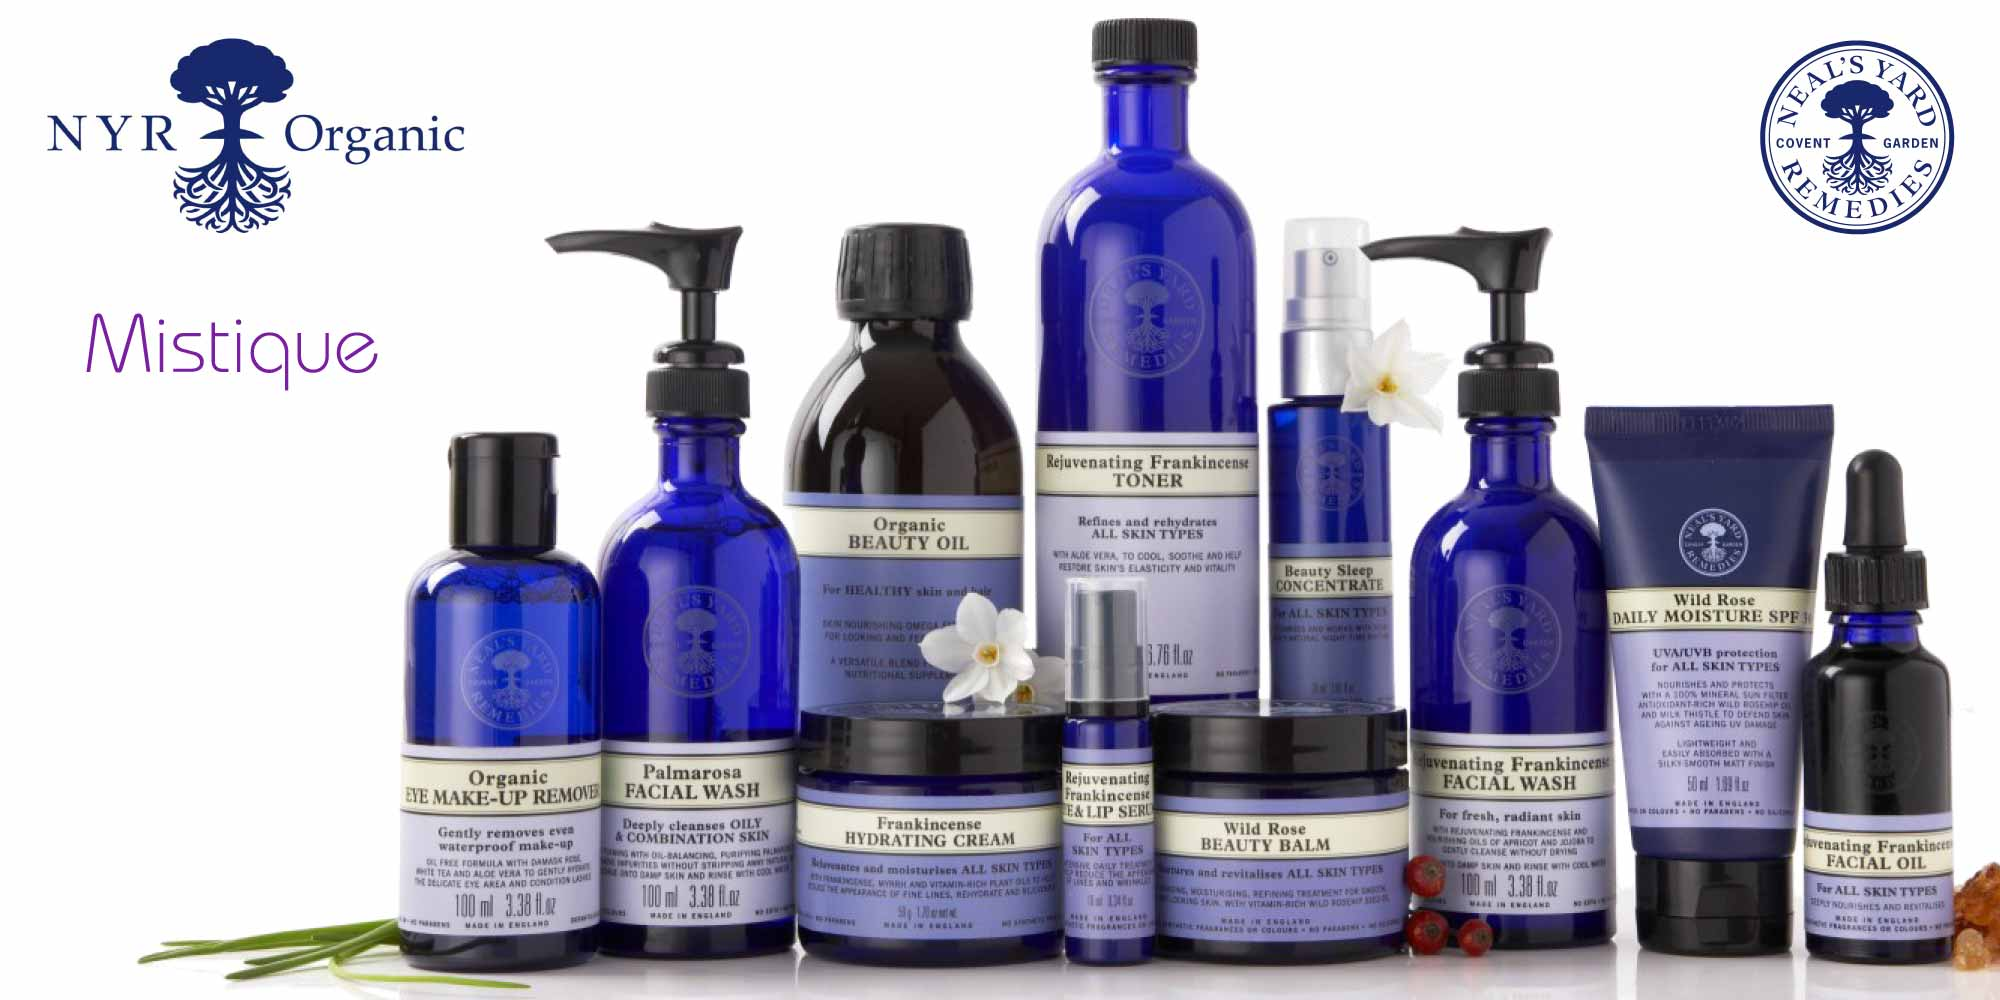 neal's yard treatments products